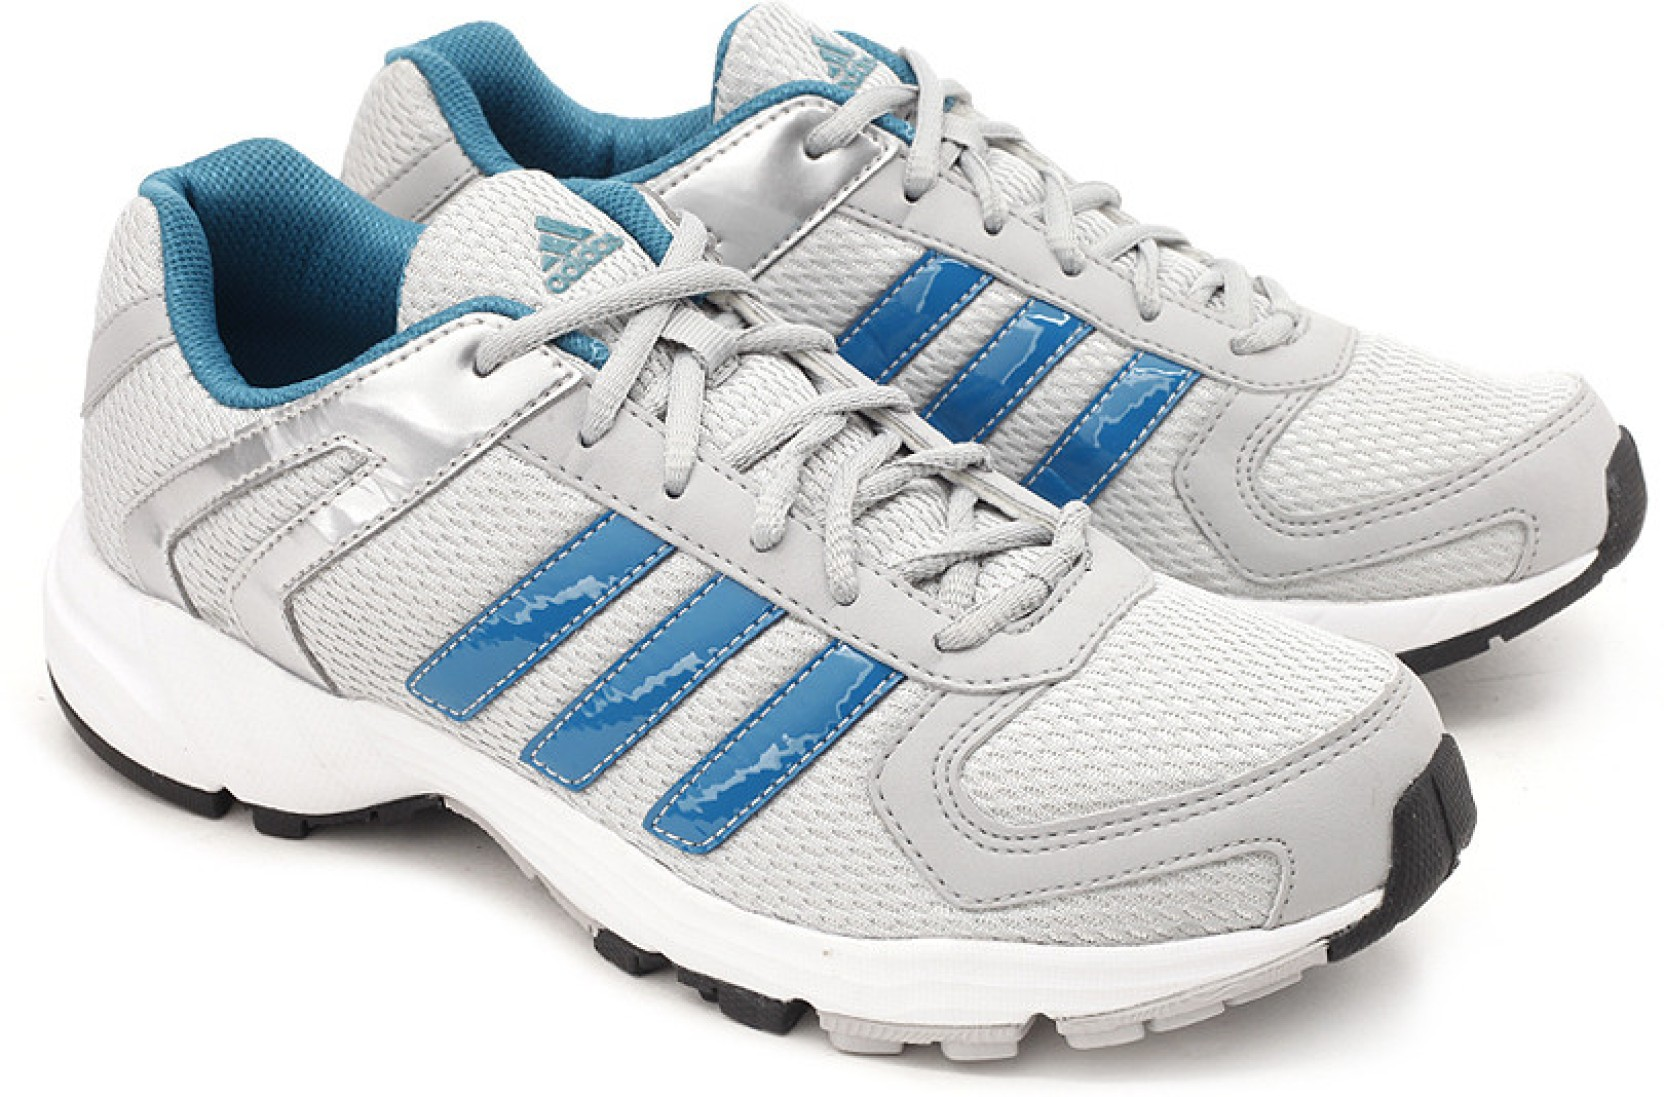 Which Are The Best Ladies Running Shoes To Get